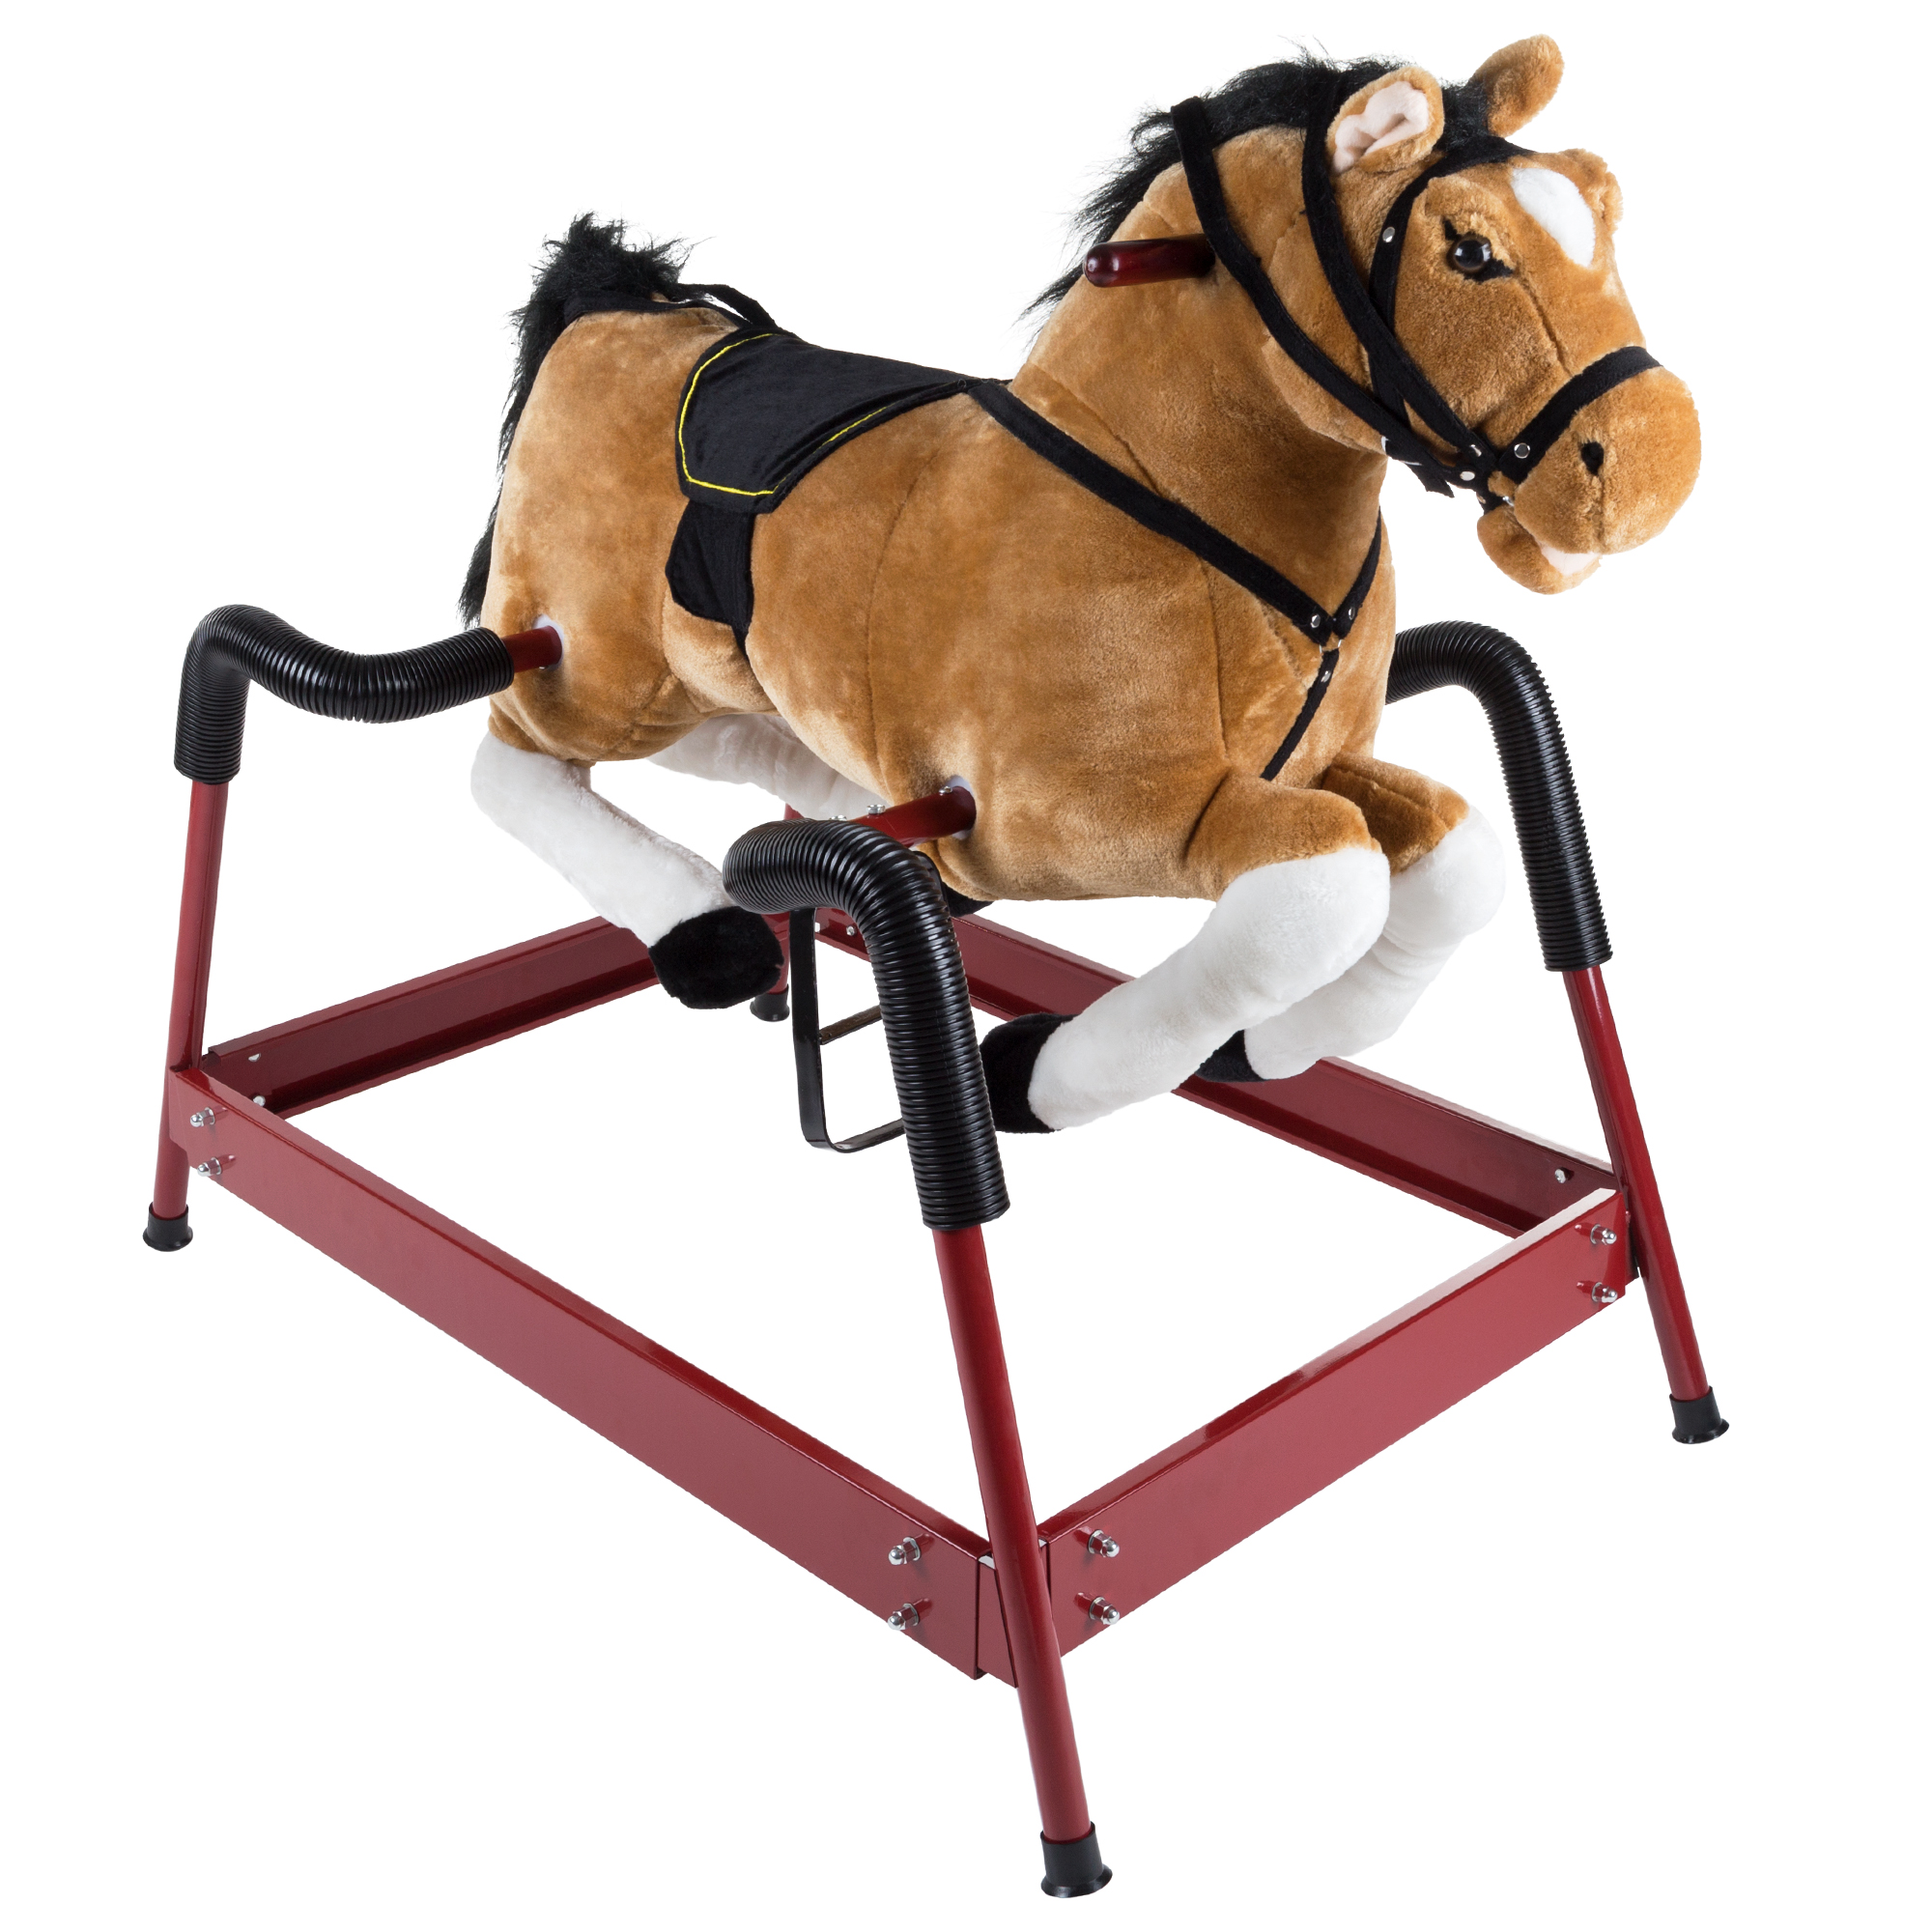 Spring Rocking Horse Plush Ride on Toy with Adjustable Foot Stirrups and Sounds for Toddlers to 5 Years Old by Happy Trails